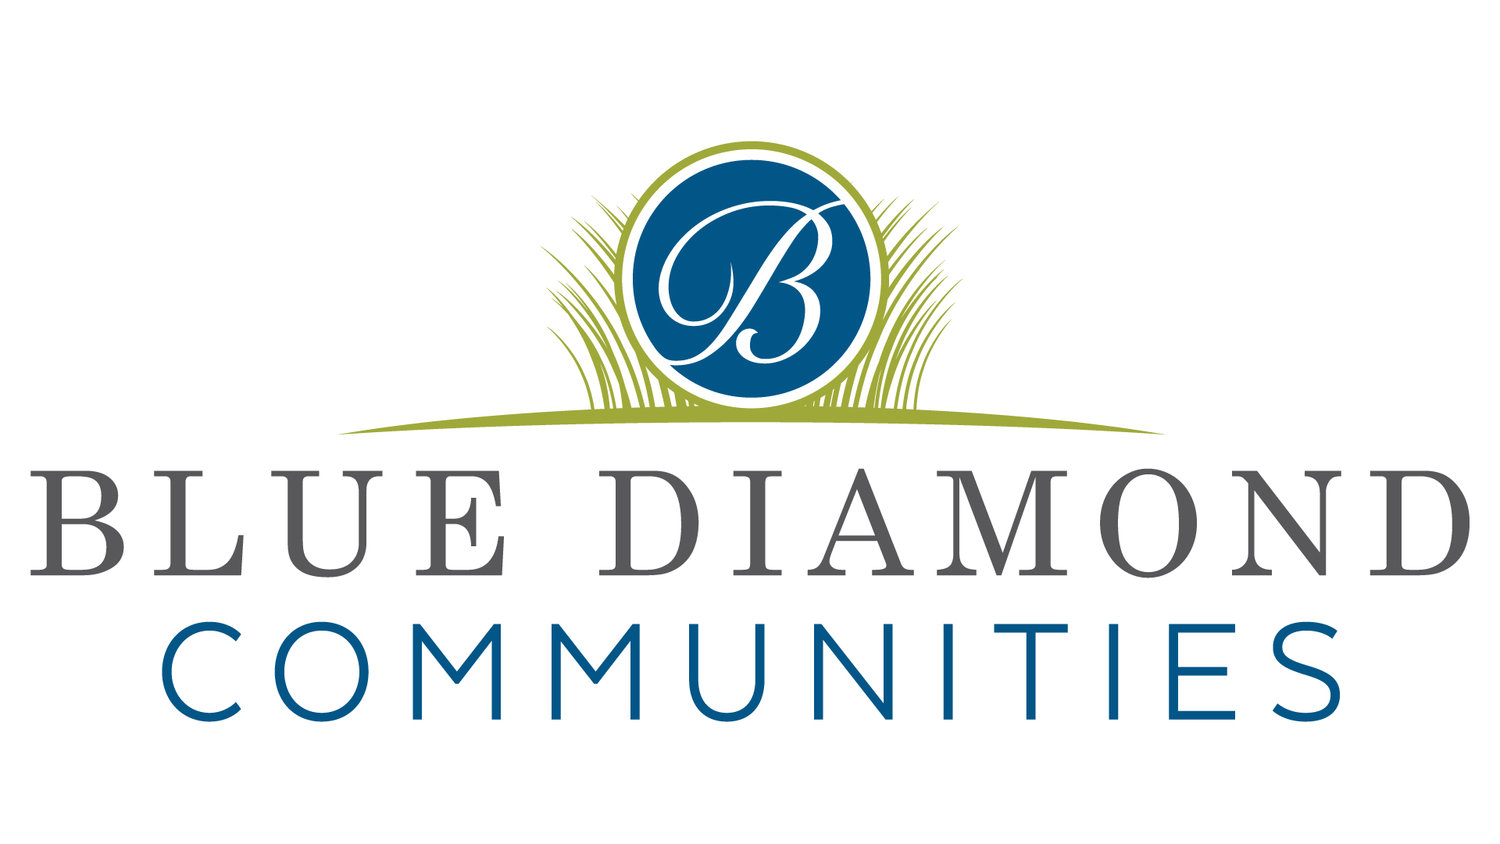 Blue Diamond Communities